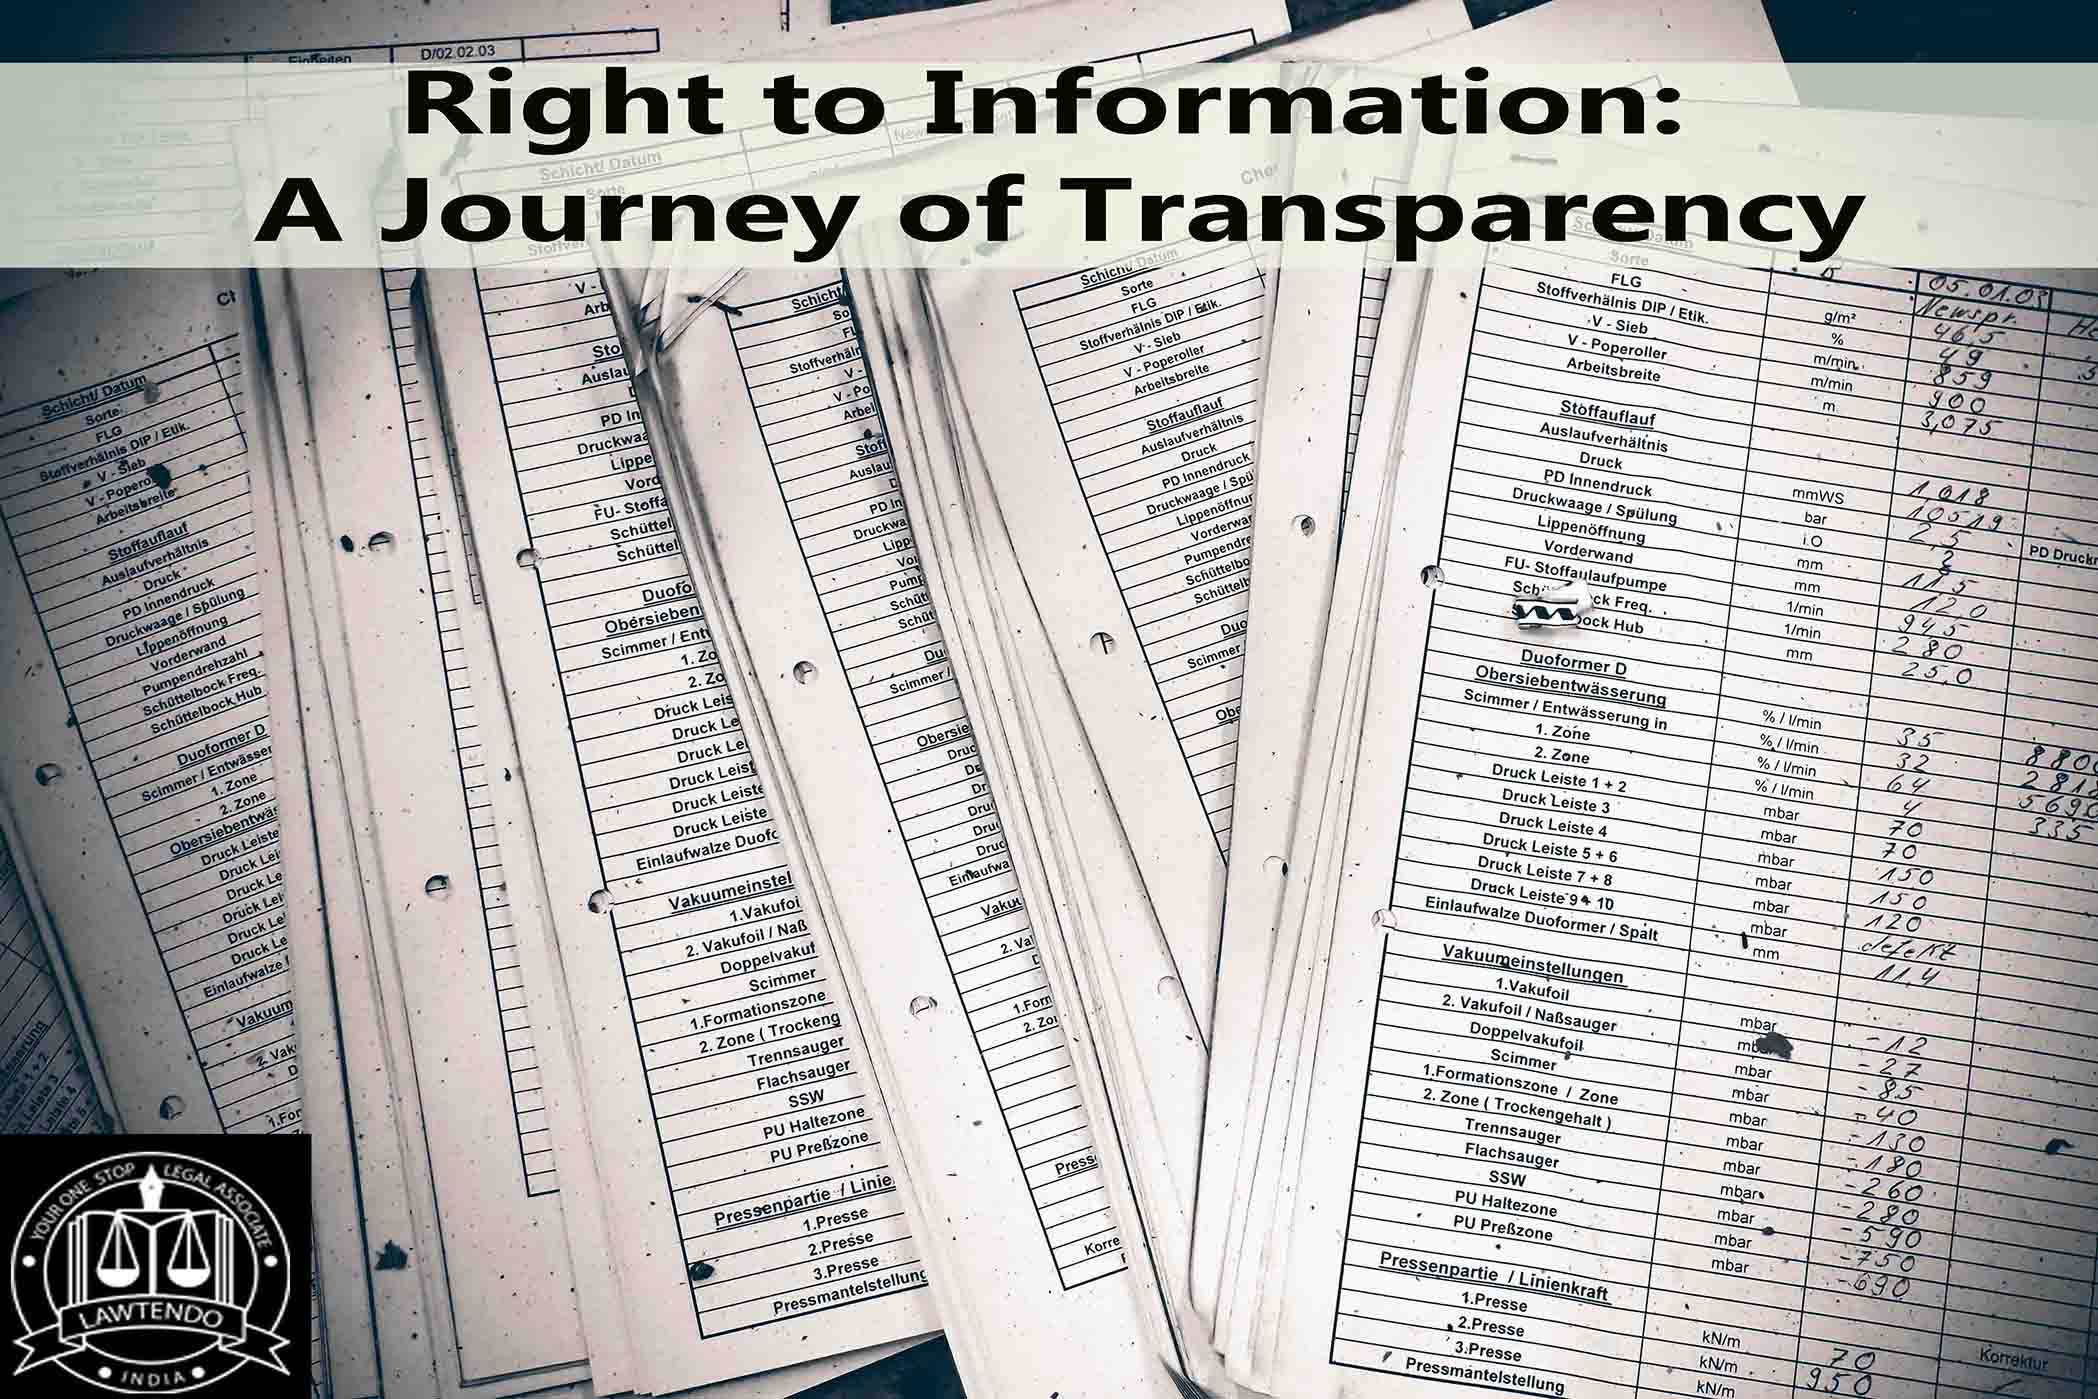 Right to Information: A Journey of Transparency